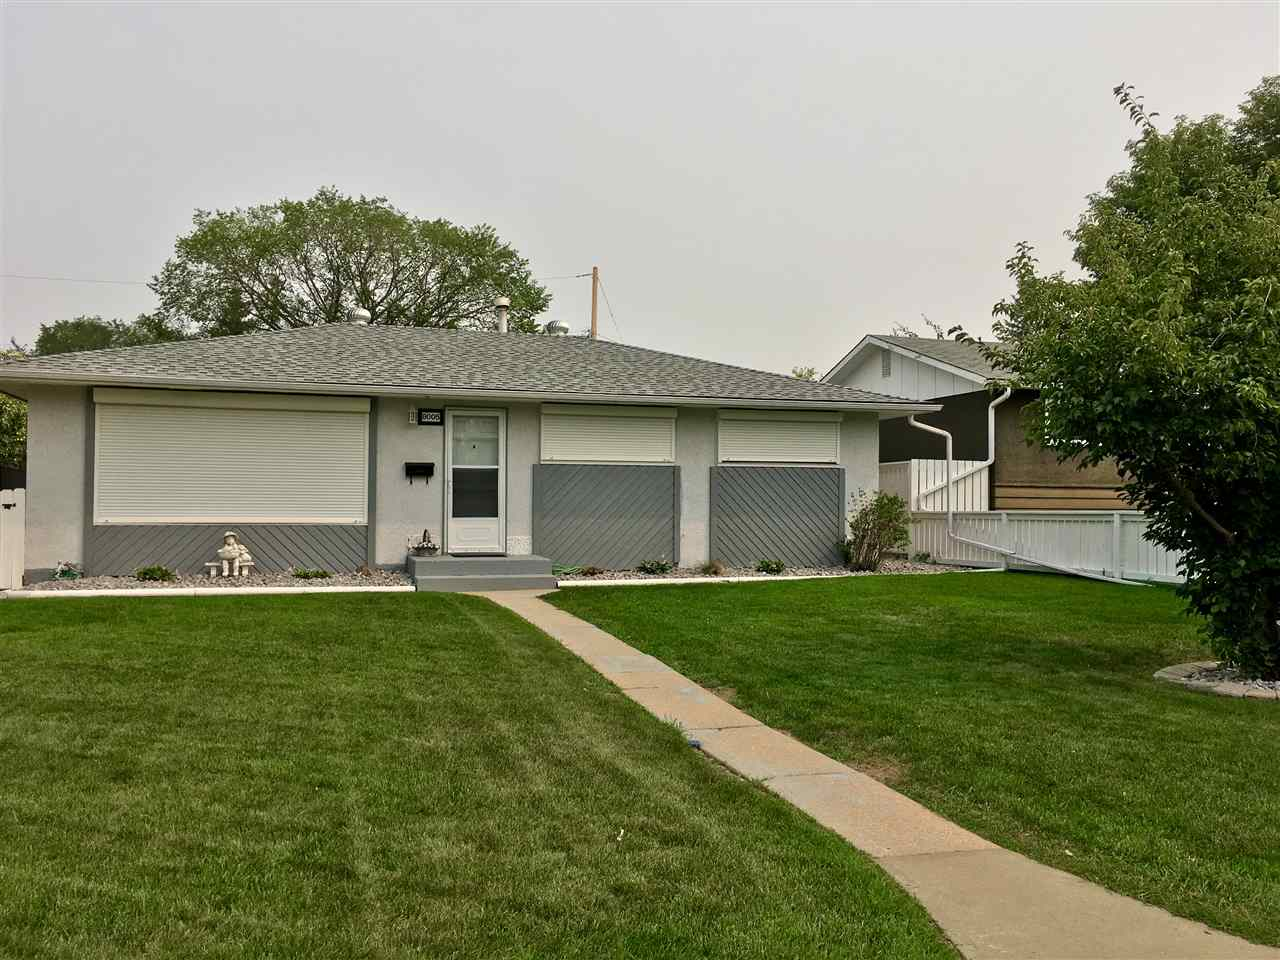 STRESS TEST BLUES got you down? Turn your frown upside down, this CUTE AS A BUTTON bsmt less bungalow in Elmwood makes SINGLE FAMILY home OWNERSHIP possible! No need for a duplex/townhouse! With 1055 sq ft, 3 bedrooms, SPACIOUS yard, and DOUBLE GARAGE, you will LOVE living here! The yard is a GORGEOUS OASIS with so much new landscaping and fencing done! Don't forget the shingles, garage doors, eaves/soffit, vinyl deck, roll shutters and ext. painting too! PRIDE OF OWNERSHIP is evident! Inside is full of character with AWESOME 1? hard wood floors, oak feature walls, a great kitchen, and tons of storage in the crawl space so you can easily park 2 vehicles in your insulated 22 x 24 garage, that also includes 220 power! With a SUPER CONVENIENT location, QUICK ACCESS to the Whitemud, Henday, West Ed, Meadowlark Mall, Schools ad playgrounds, you can meet all of your needs easily! Come take a peek and snag this GEM before it's gone! It's a great opportunity to move in and add your personal touches to the rest!